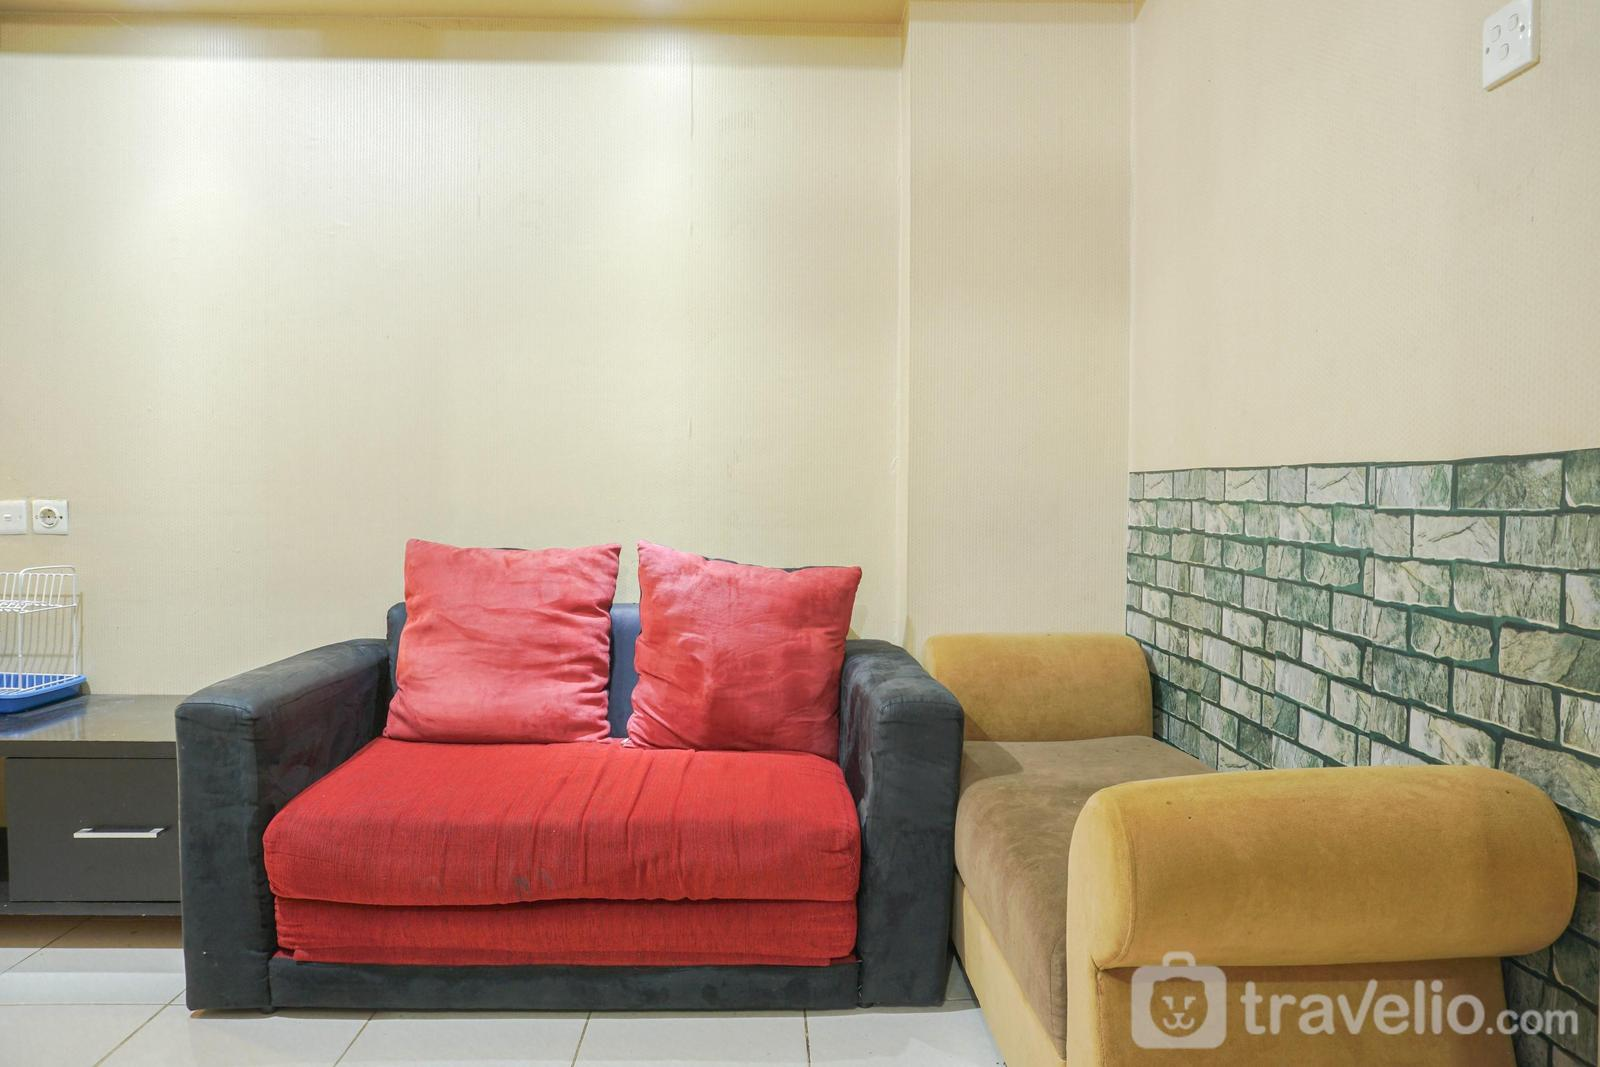 Kalibata City Apartment - Best Choice Kalibata City Apartment 2BR near Mall By Travelio